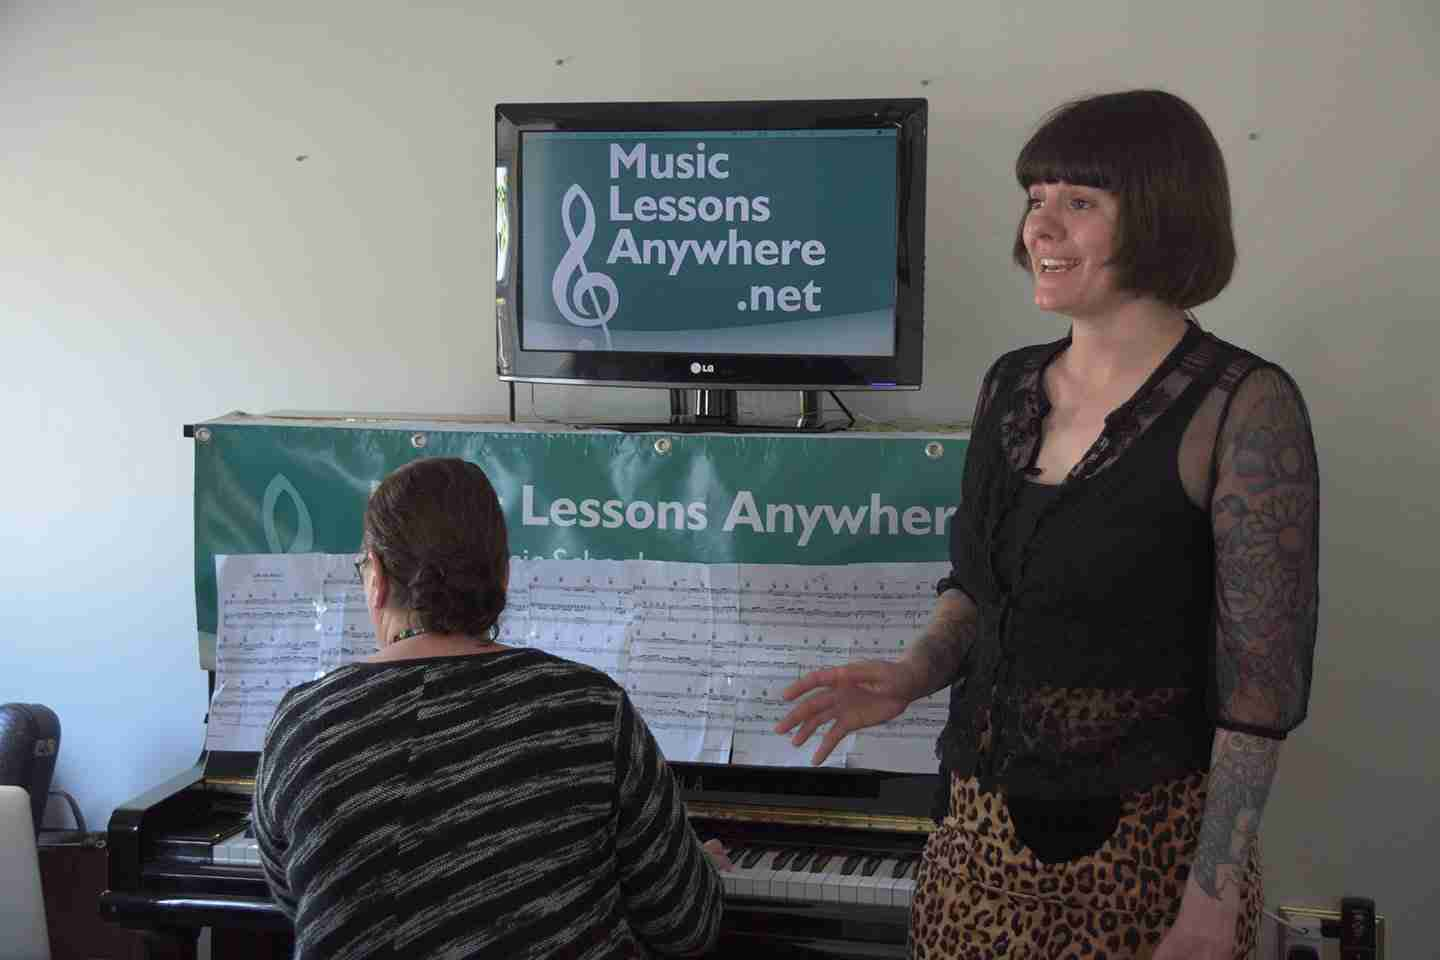 09-music-lessons-anywhere-online-music-lessons-concert-2018-2